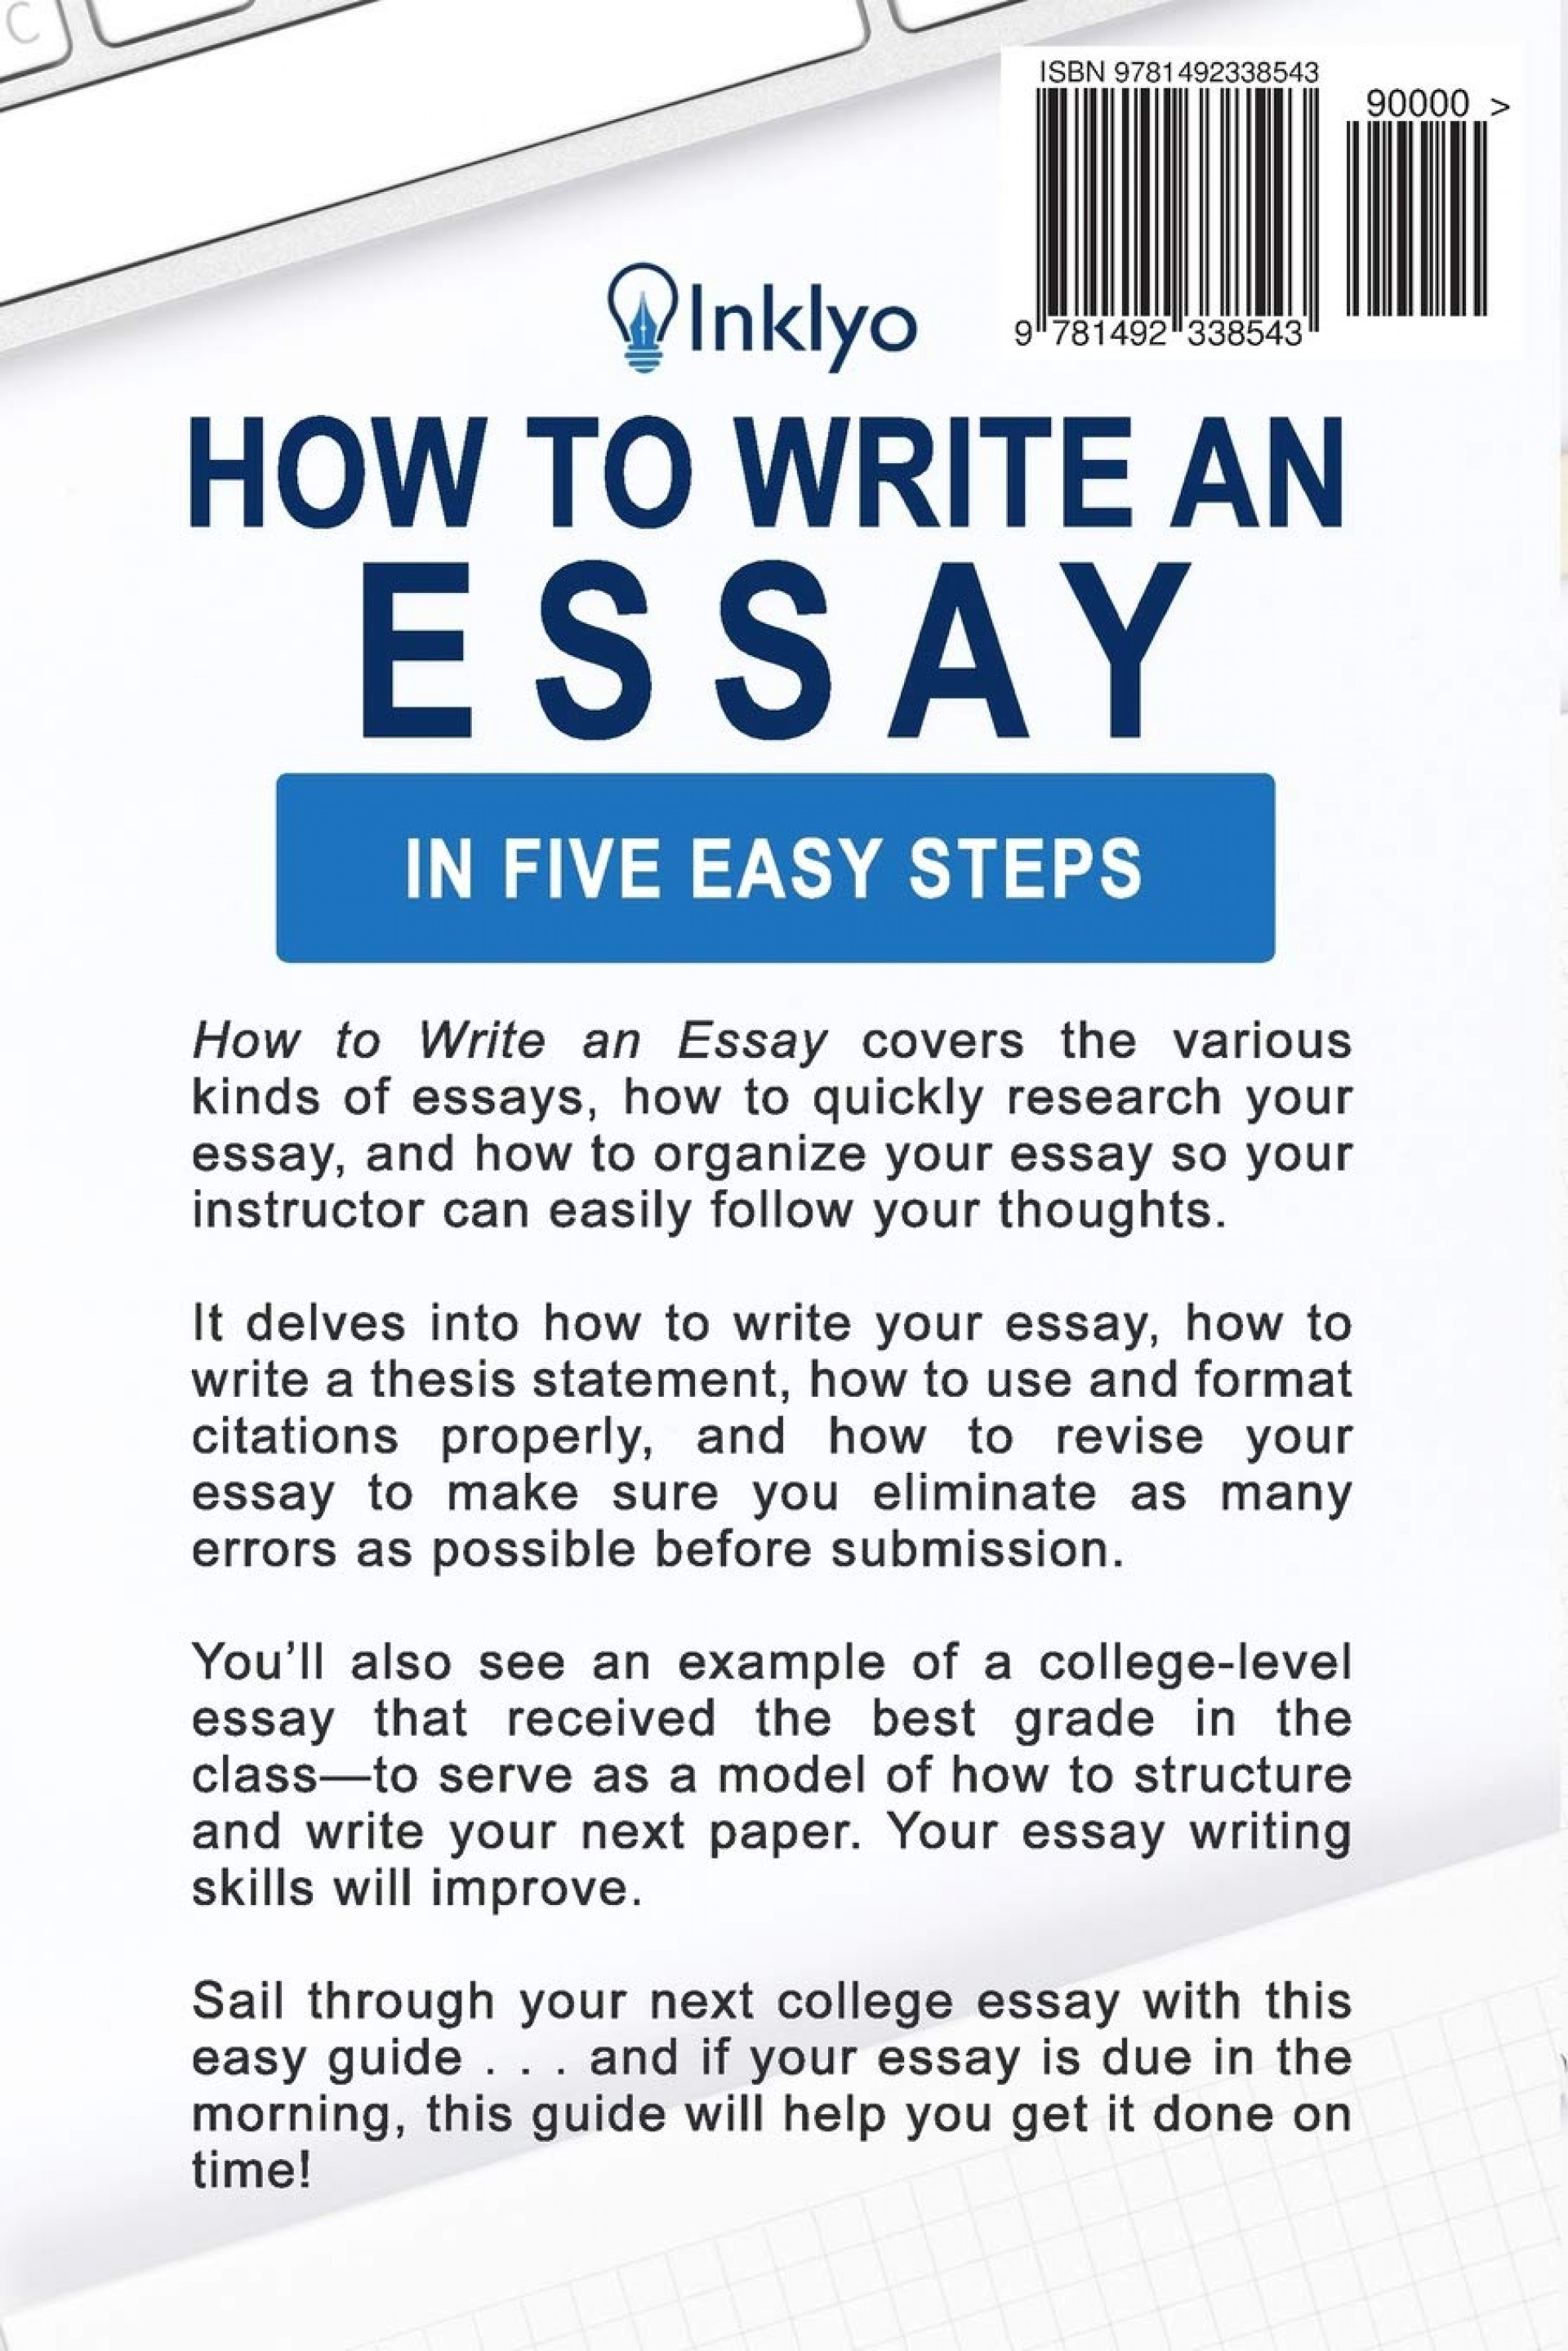 003 How To Write Essay Example Archaicawful A History Research Outline Introduction 1920